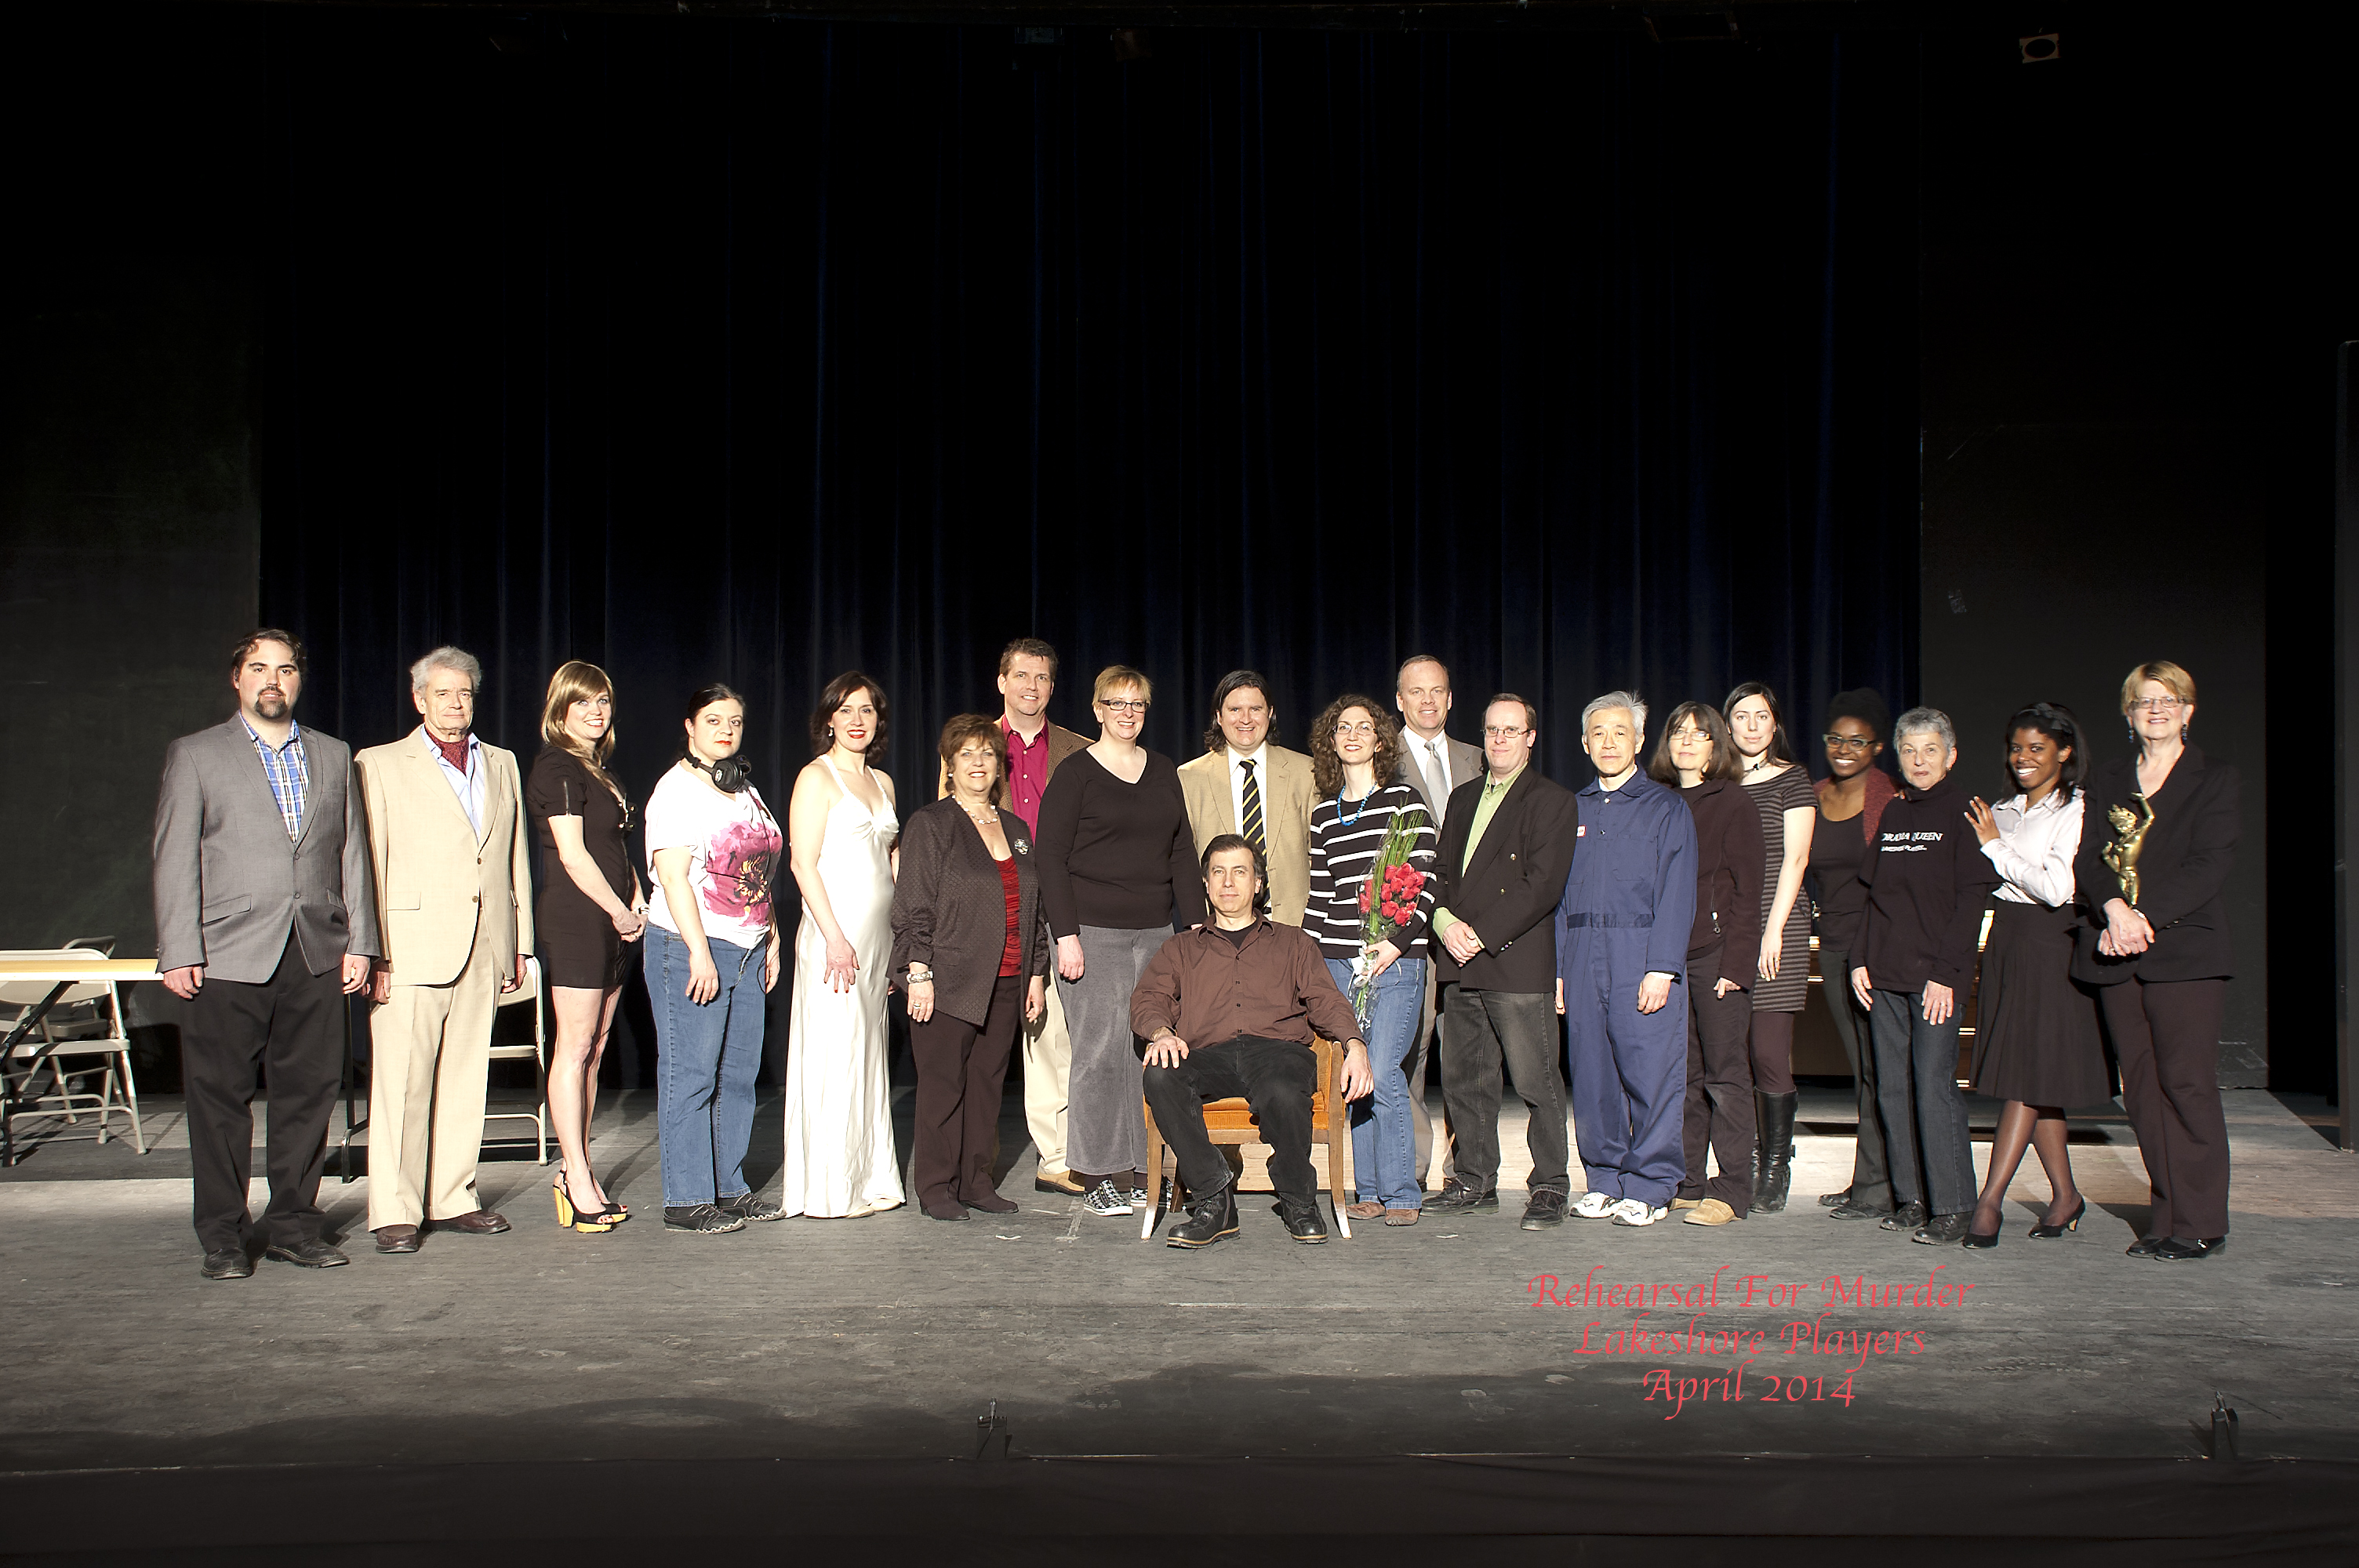 Rehearsal For Murder - cast and crew